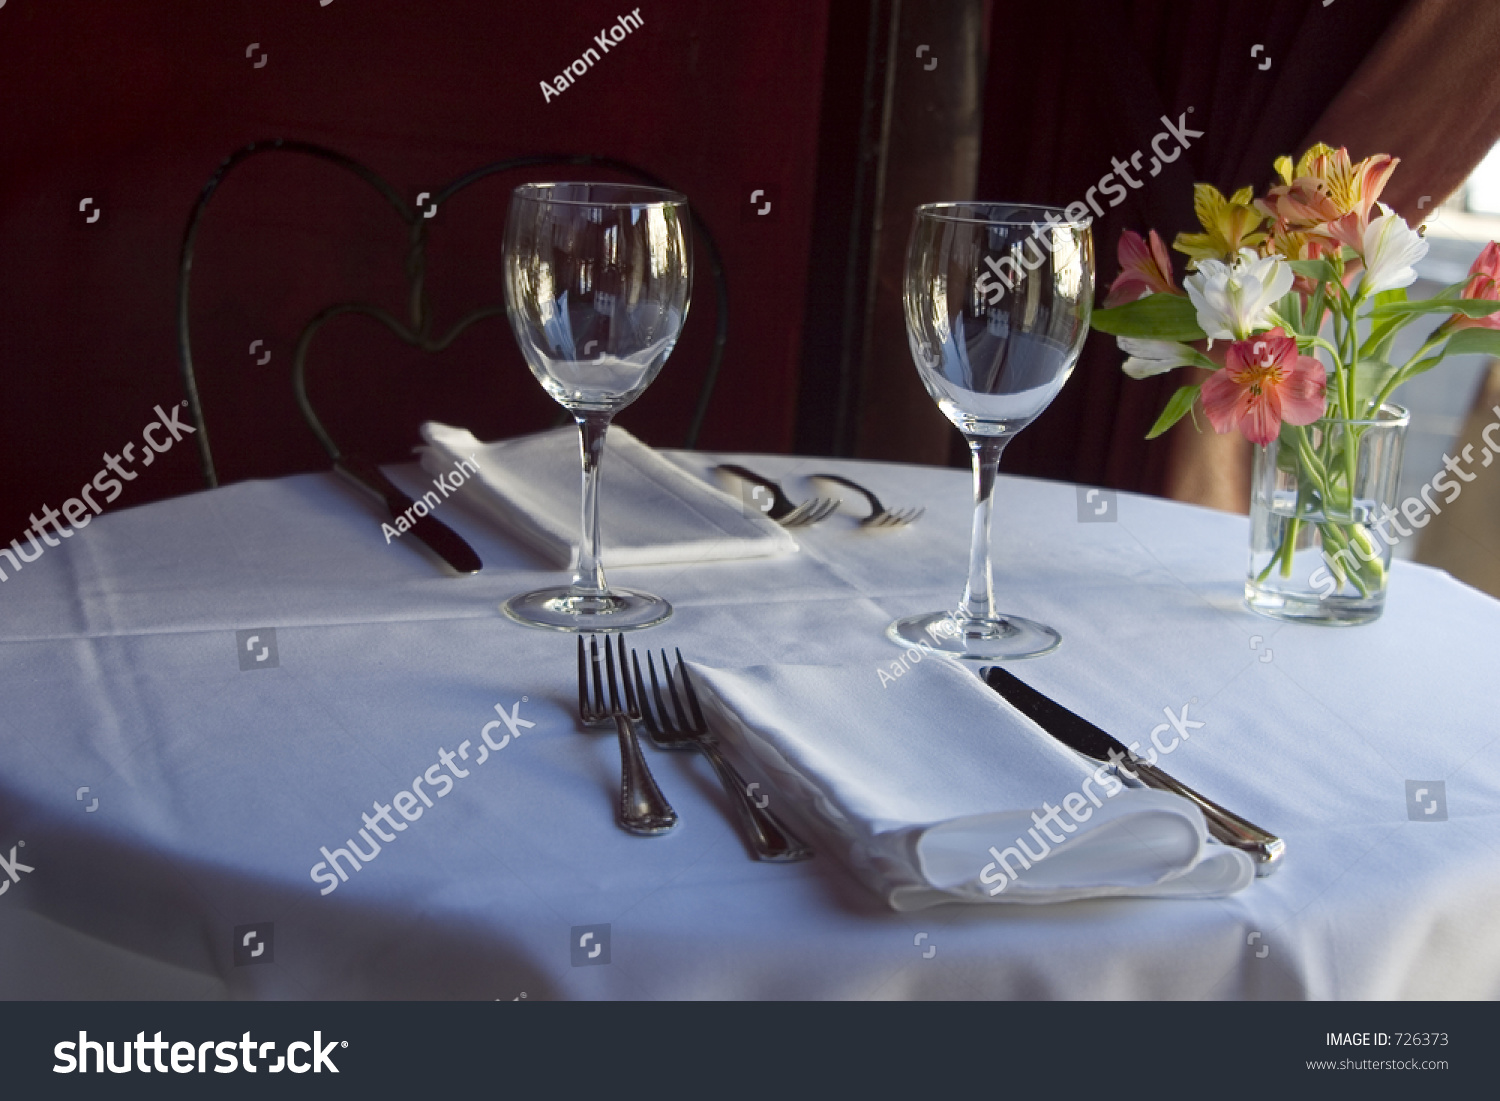 A nice semi-formal table setting. & Nice Semiformal Table Setting Stock Photo (Edit Now)- Shutterstock